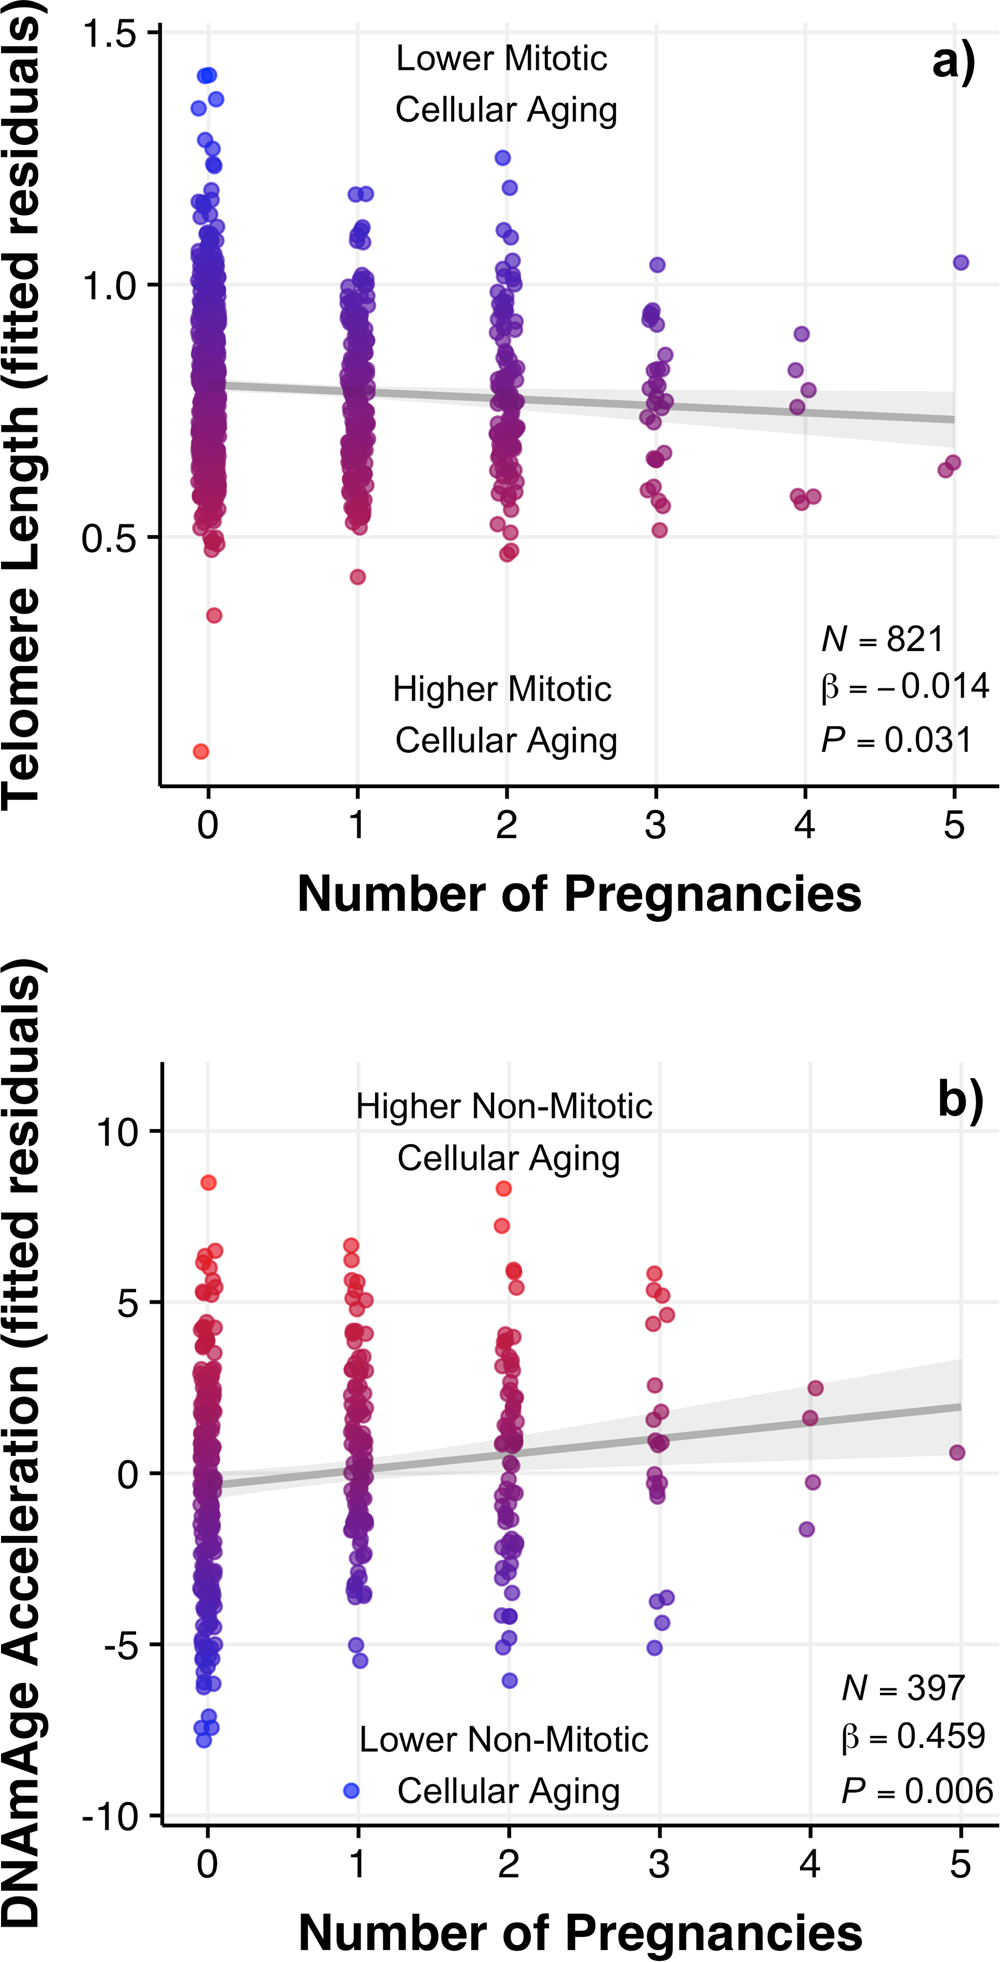 Reproduction predicts shorter telomeres and epigenetic age acceleration  among young adult women | Scientific Reports